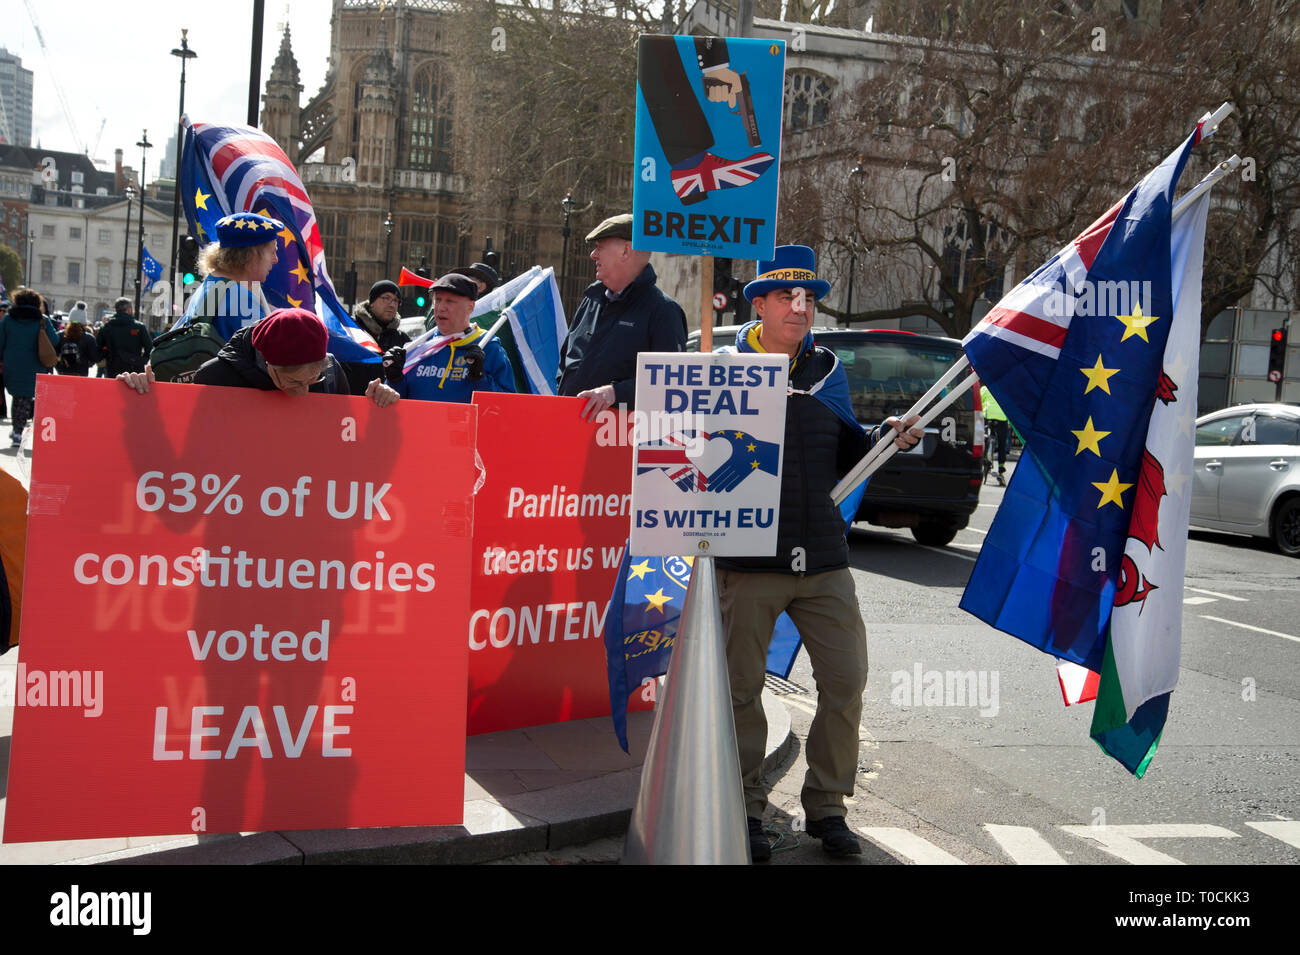 Westminster March 18th 2019. Remain and Leave protesters in front of the Houses of Parliament. - Stock Image